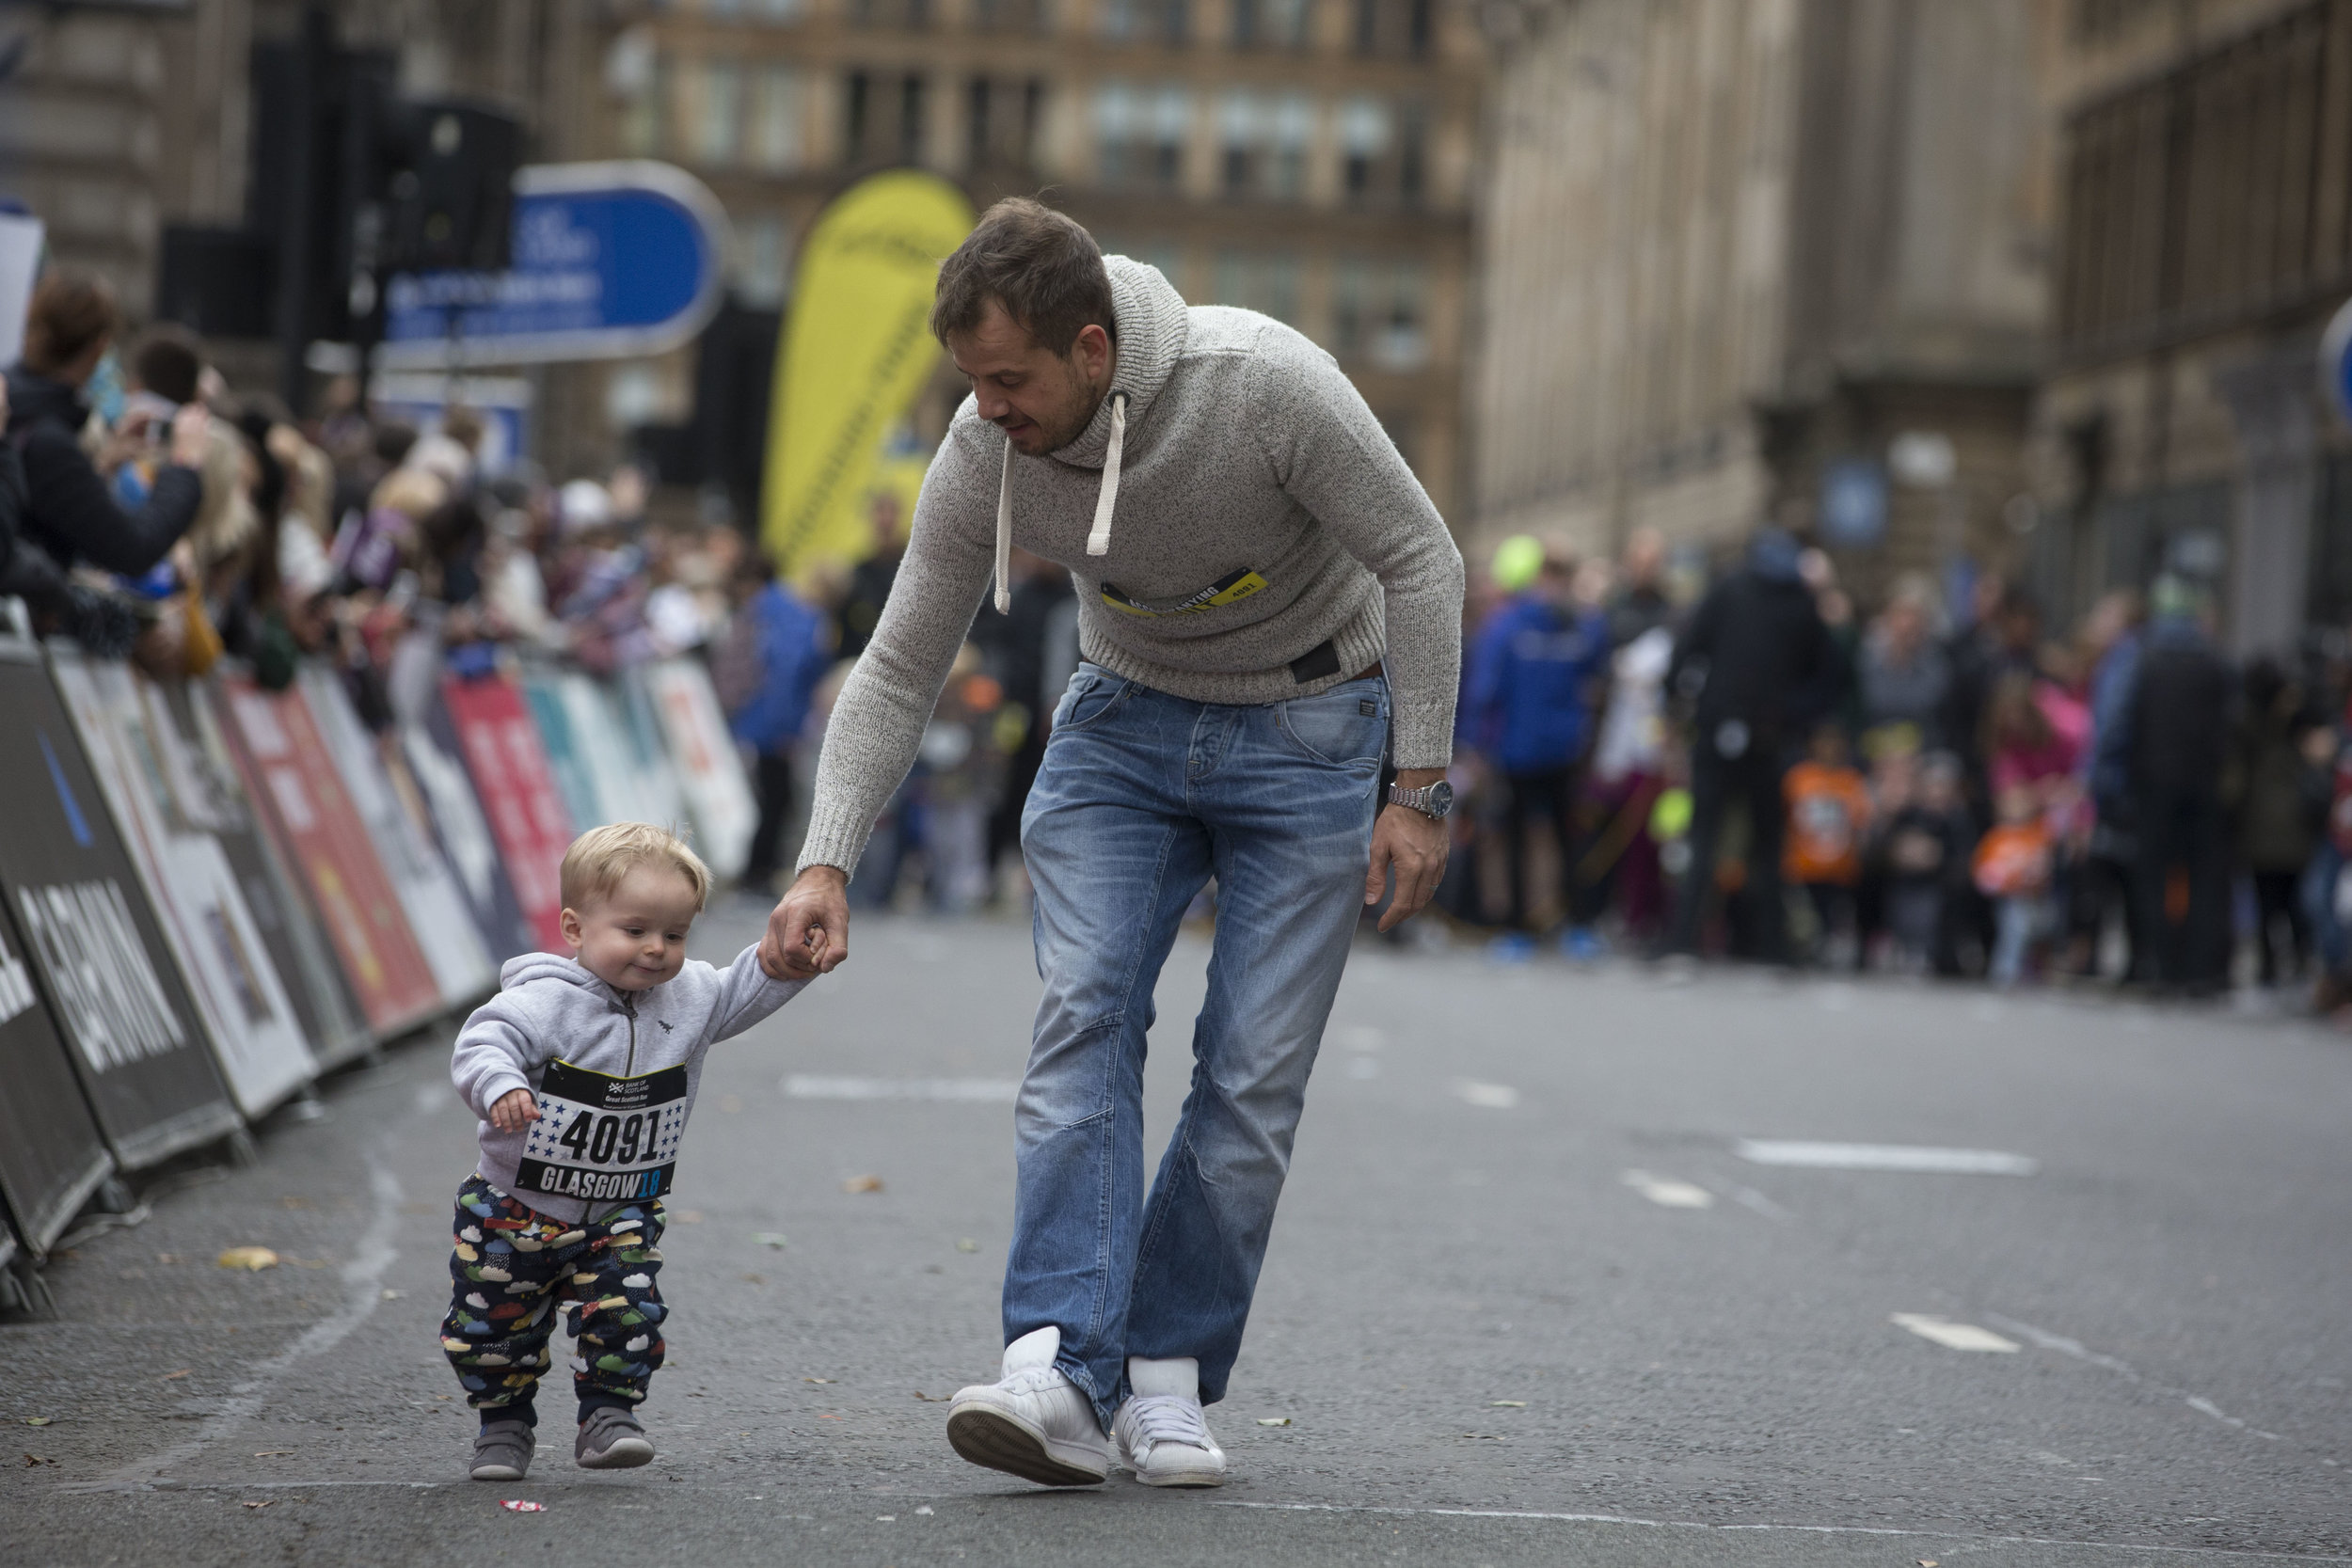 Isaac & Craig during the Great Scottish Run Toddler Dash. Isaac had only recently started to walk and this was his first 'race'. One of Craig's proudest moments as a Dad, even though the wee man was pipped at the post into last place by a kid dressed as Superman. And yes, Dad did shed a tear!  Image Credit: Great Scottish Run.